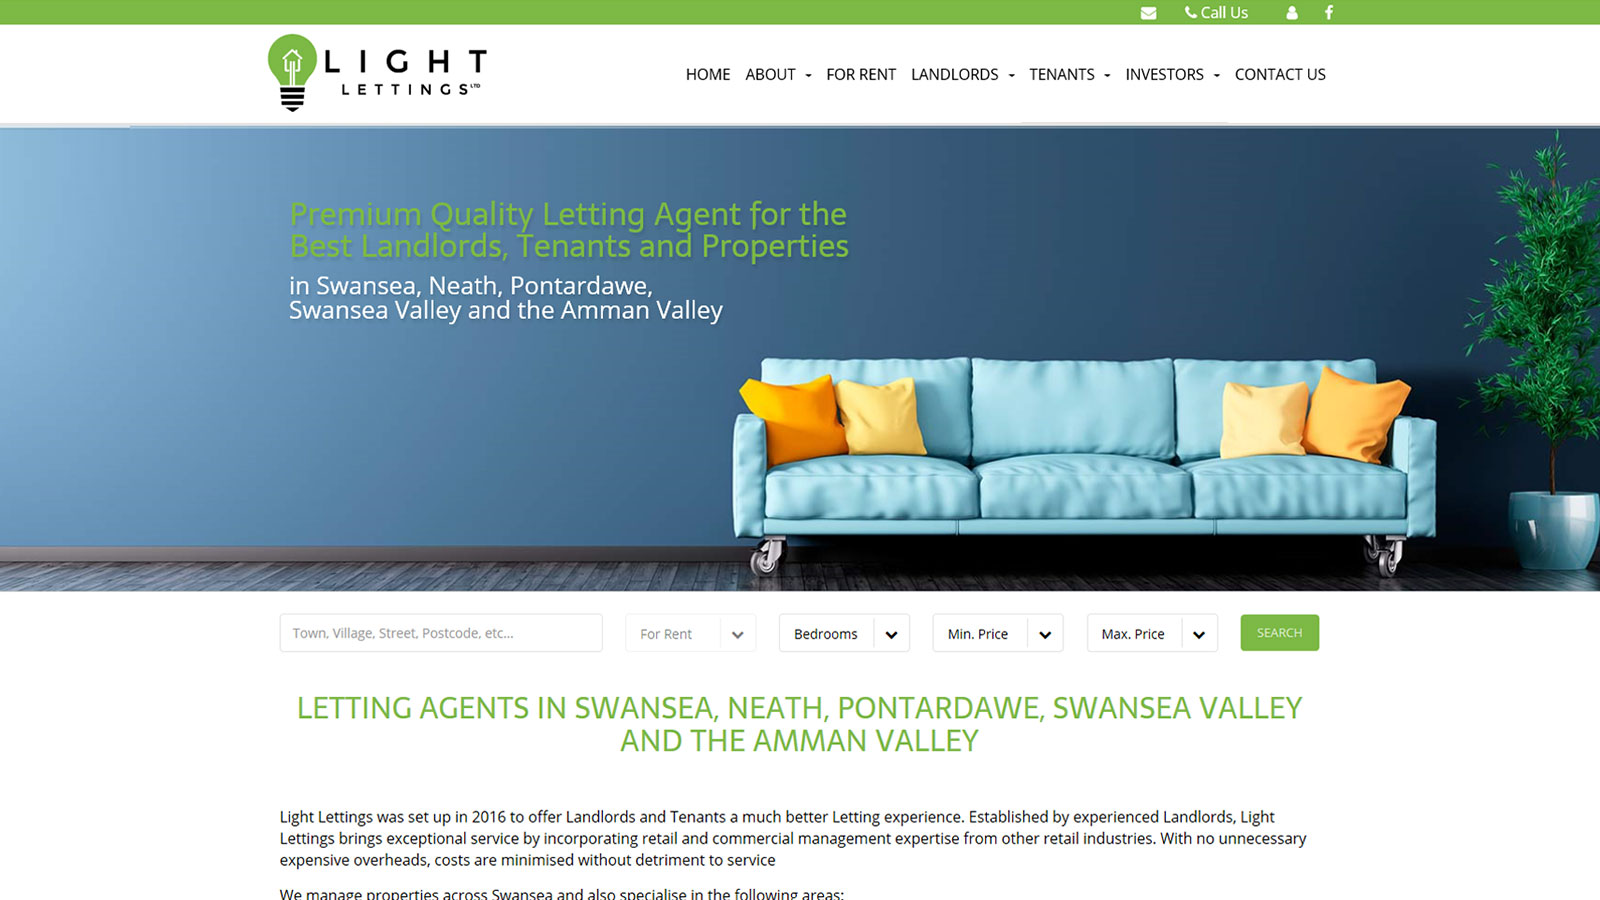 Light Lettings